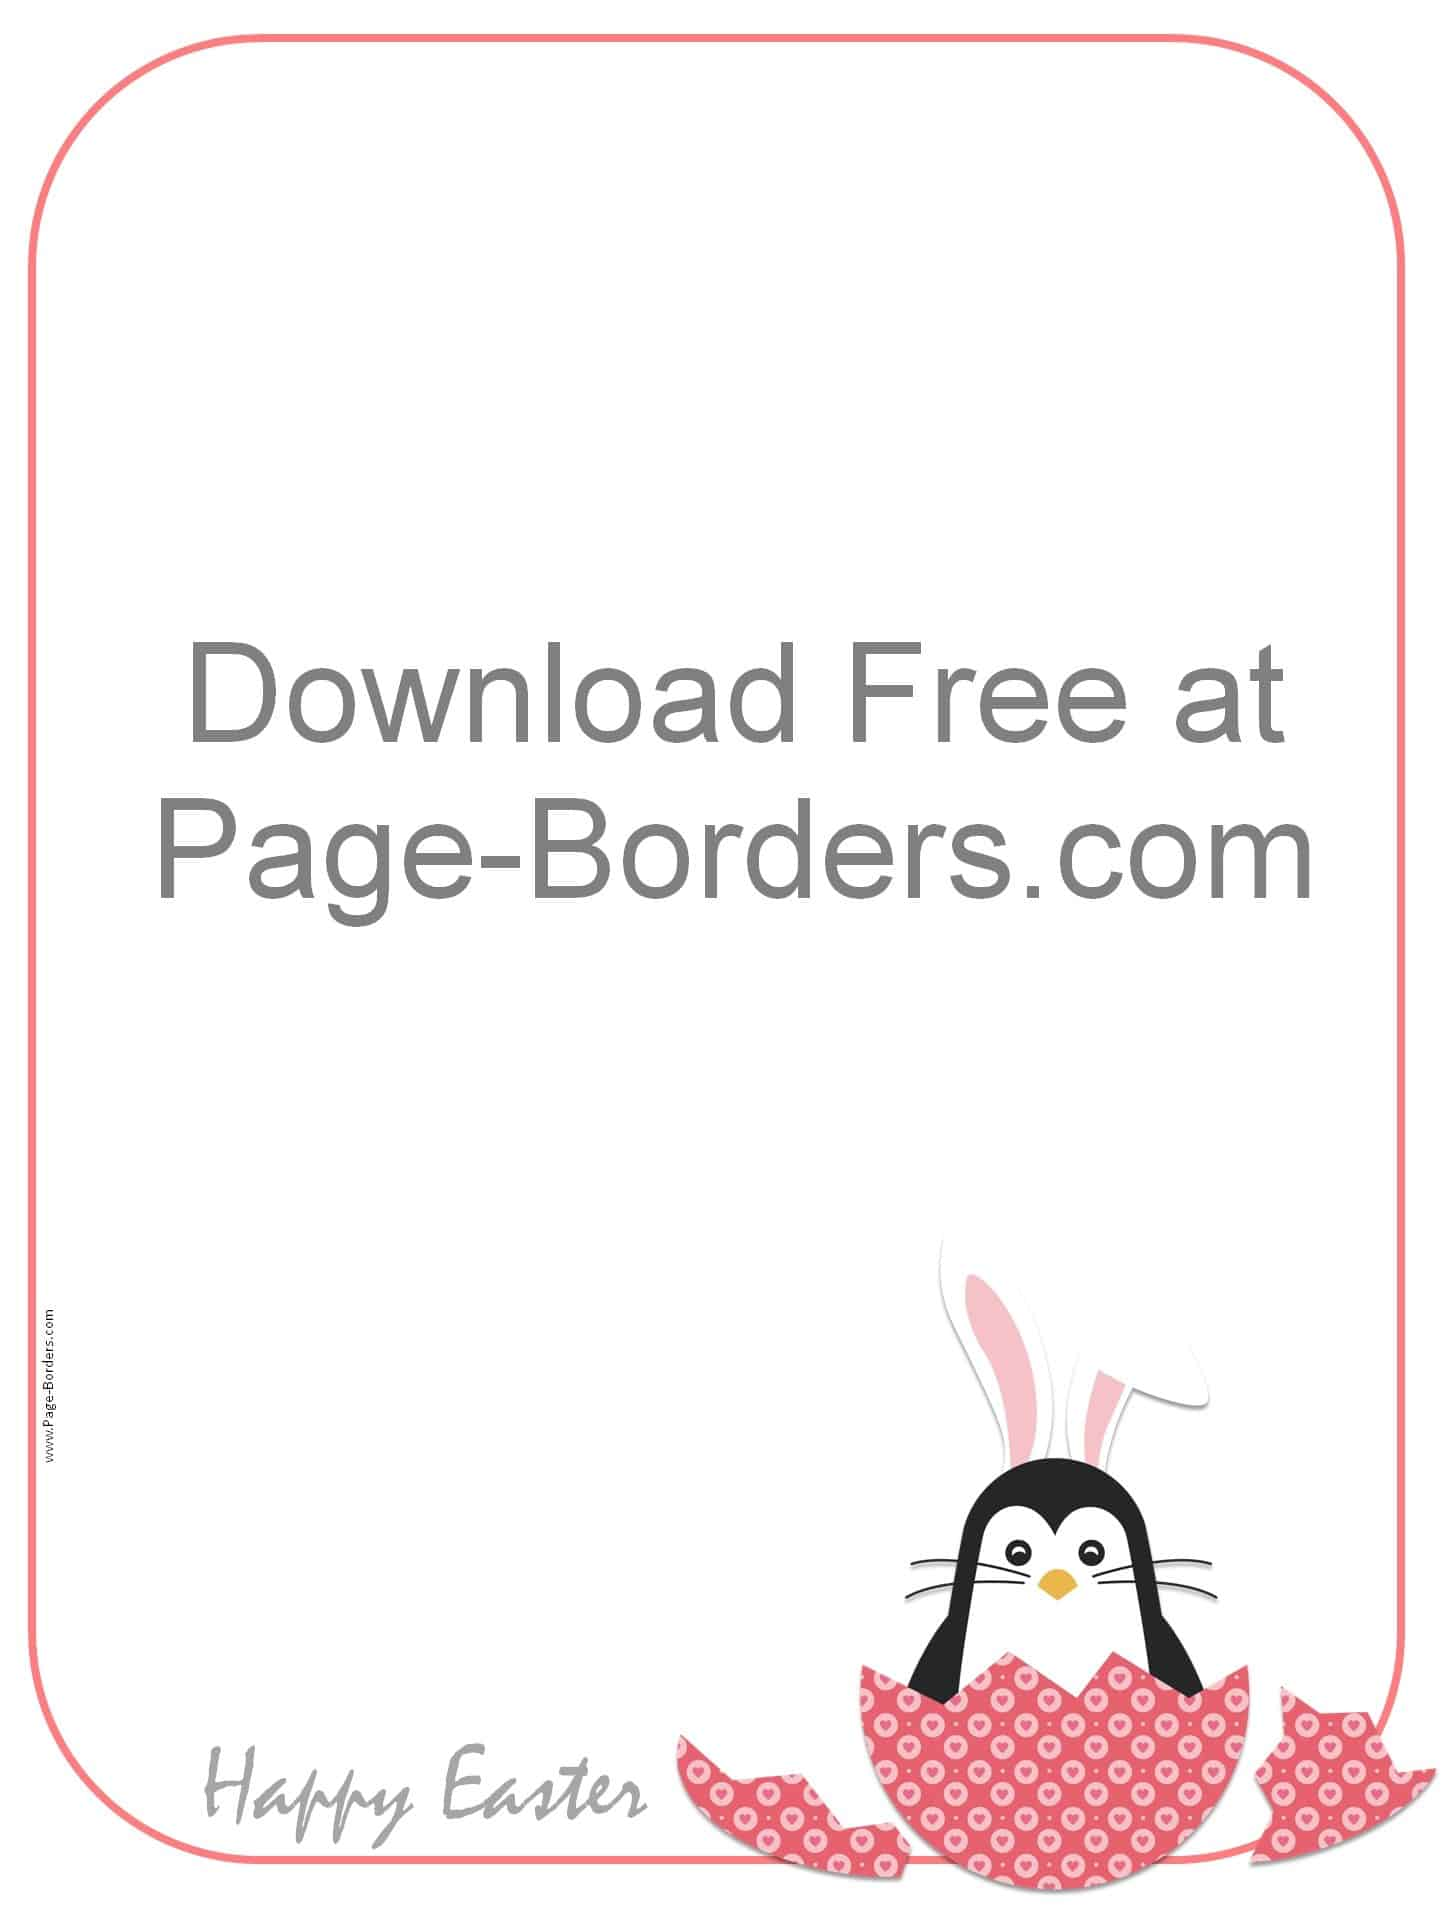 Free Easter Border - Customizable and Printable